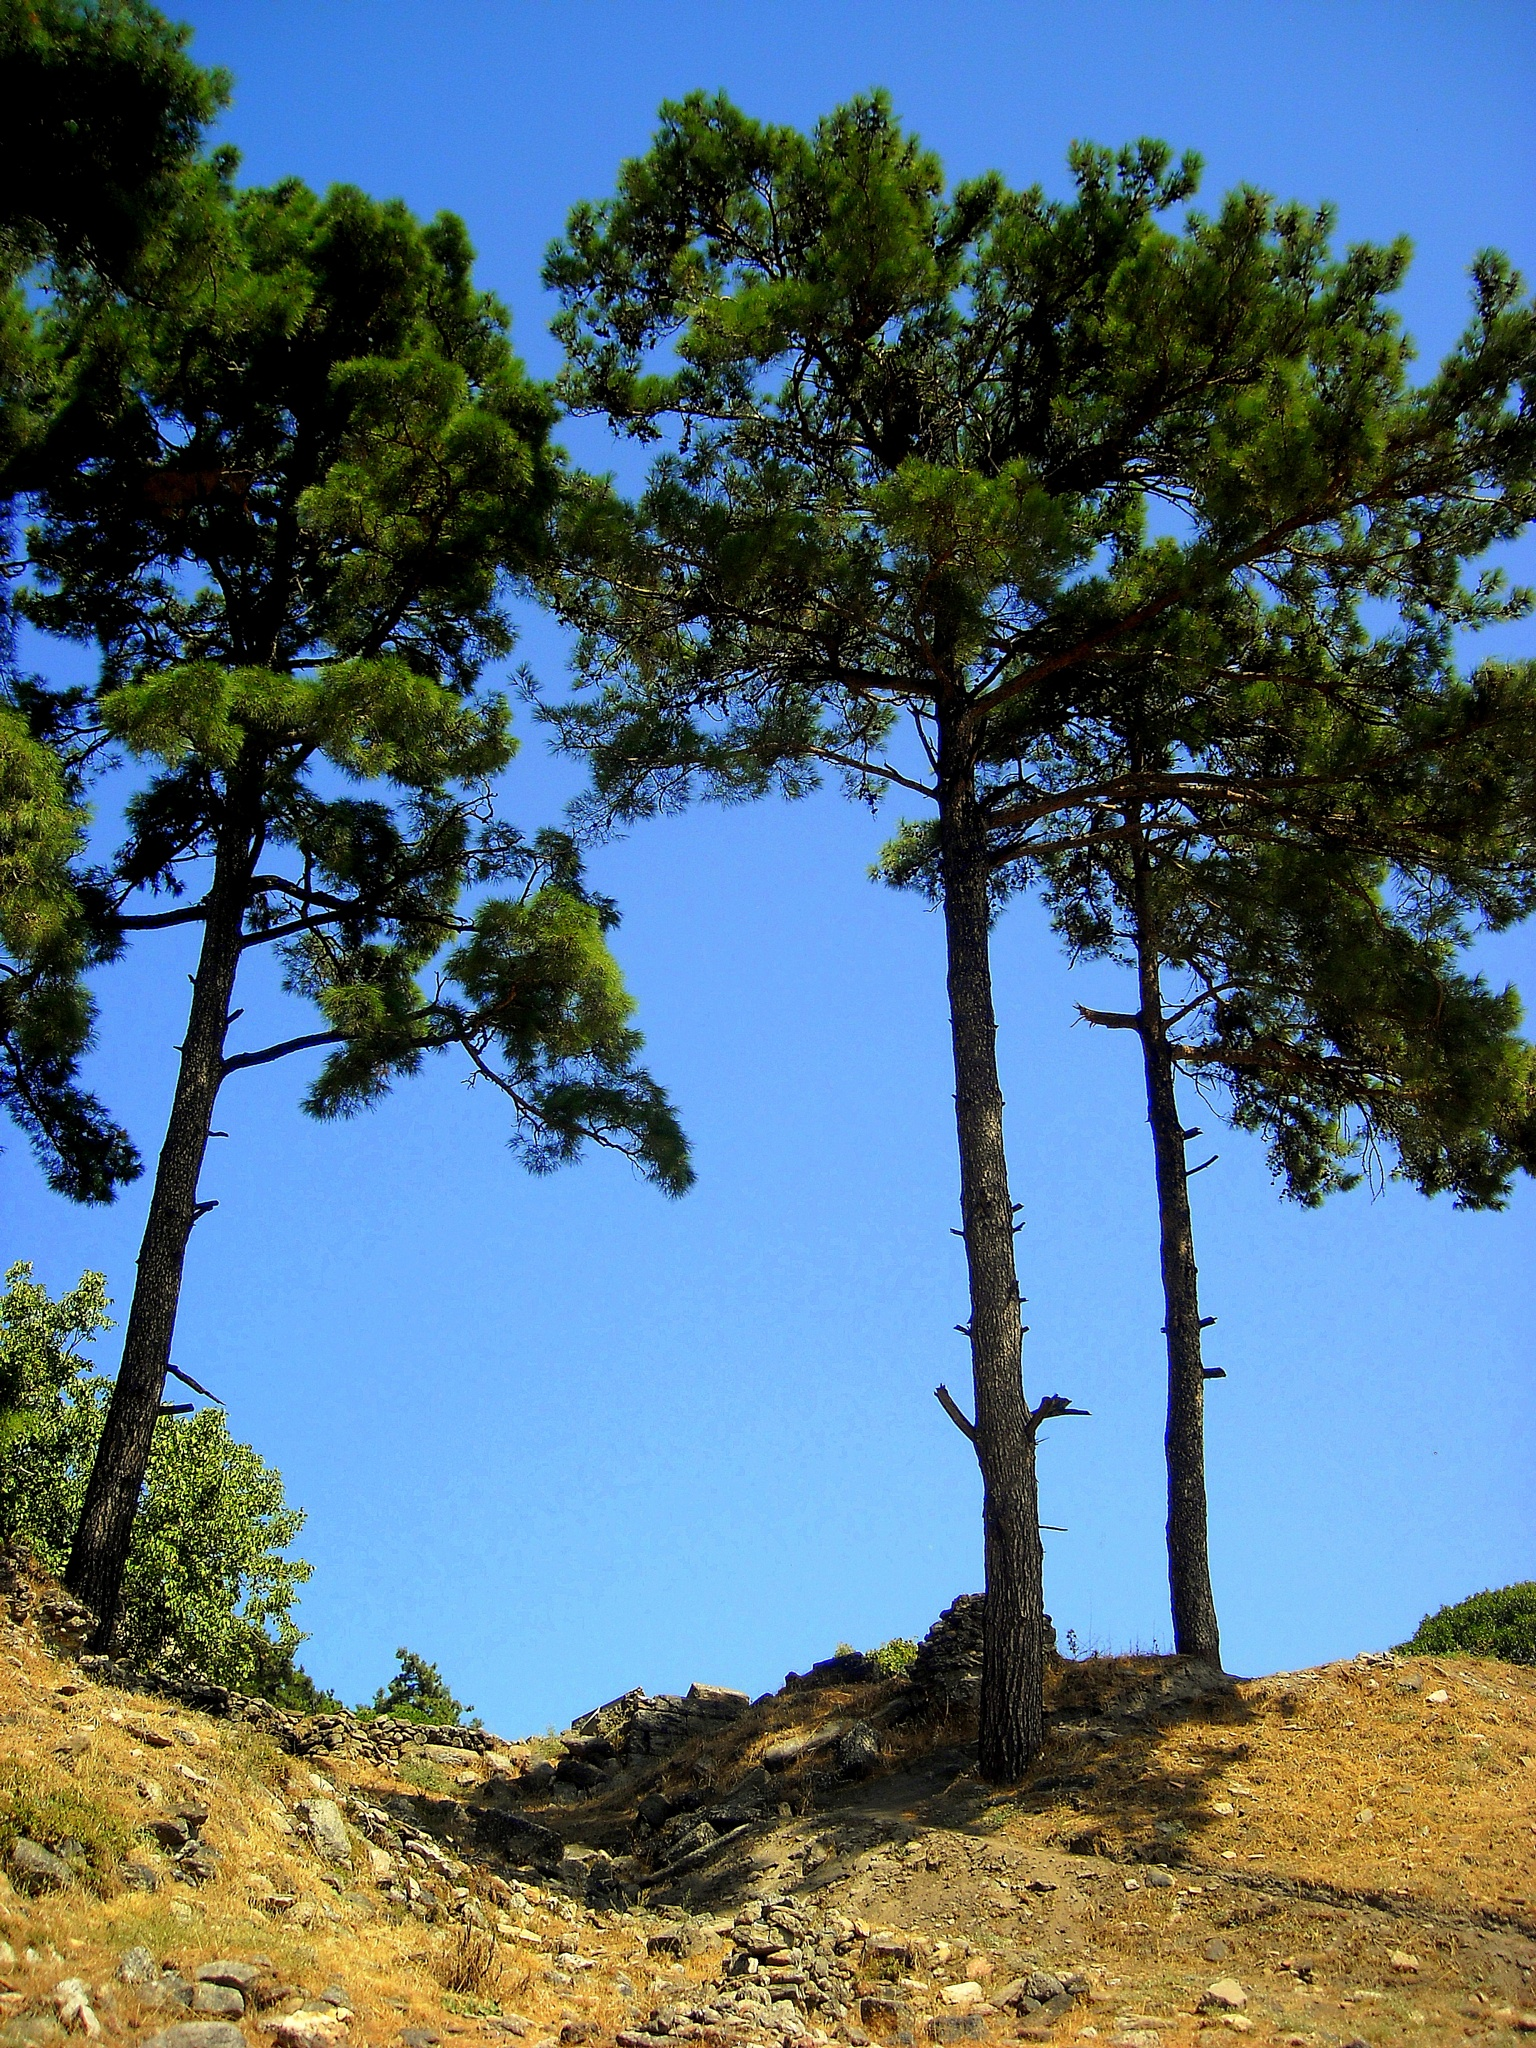 PINE TREES  ON THE HEIGHTS OF LABRANDA HISTORICAL SITE, MILAS, MUGLA/TURKEY by Akin Saner